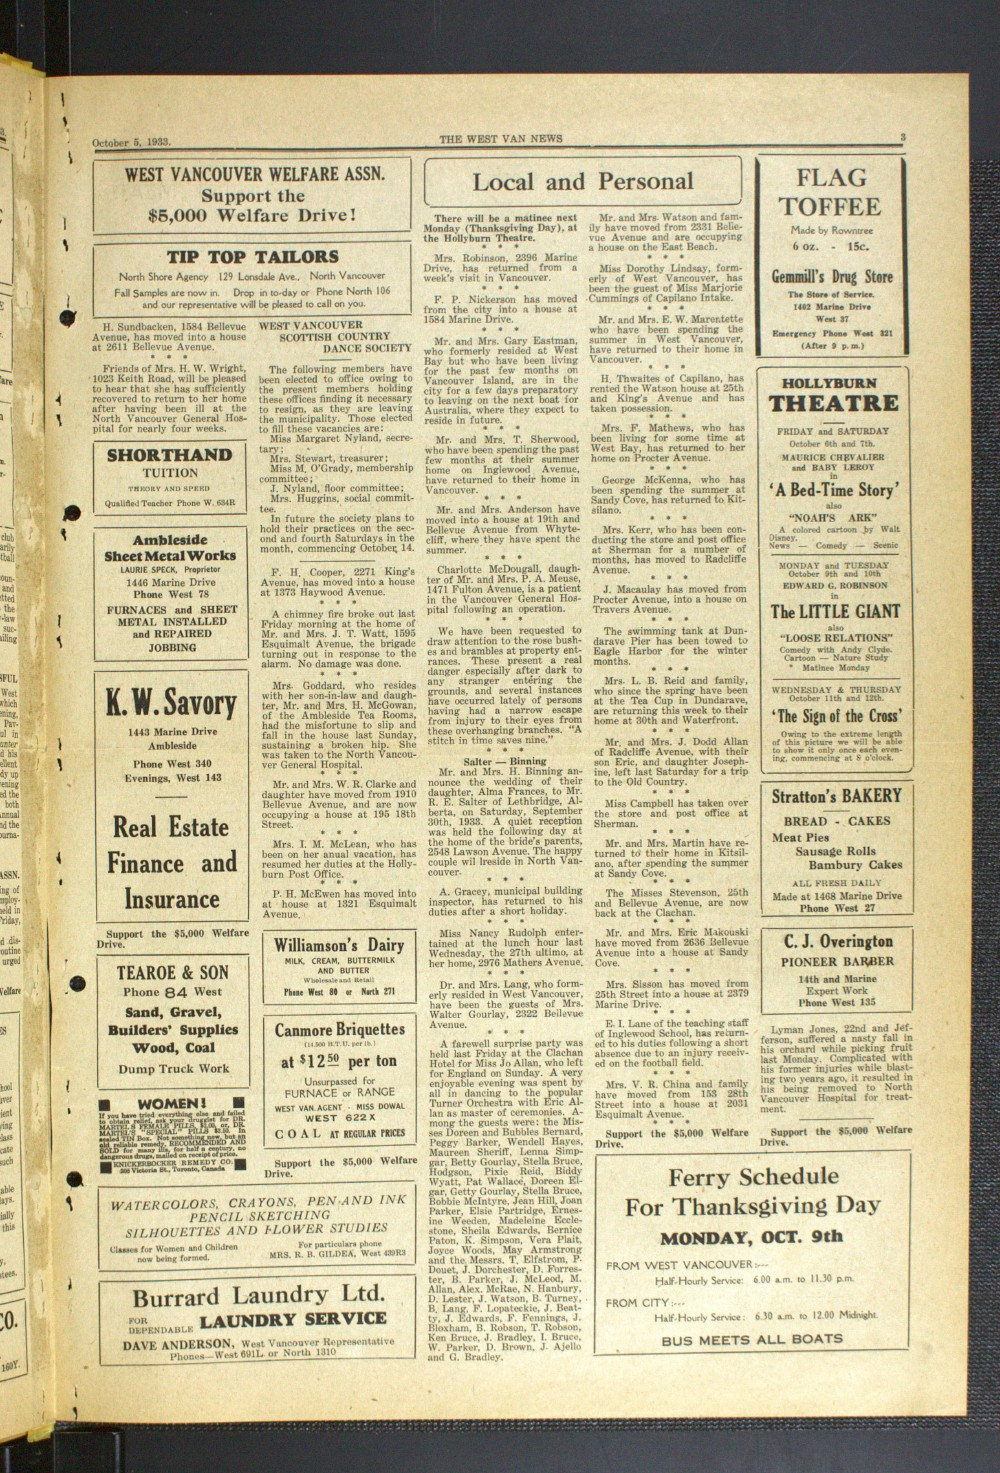 West Van. News (West Vancouver), 5 Oct 1933